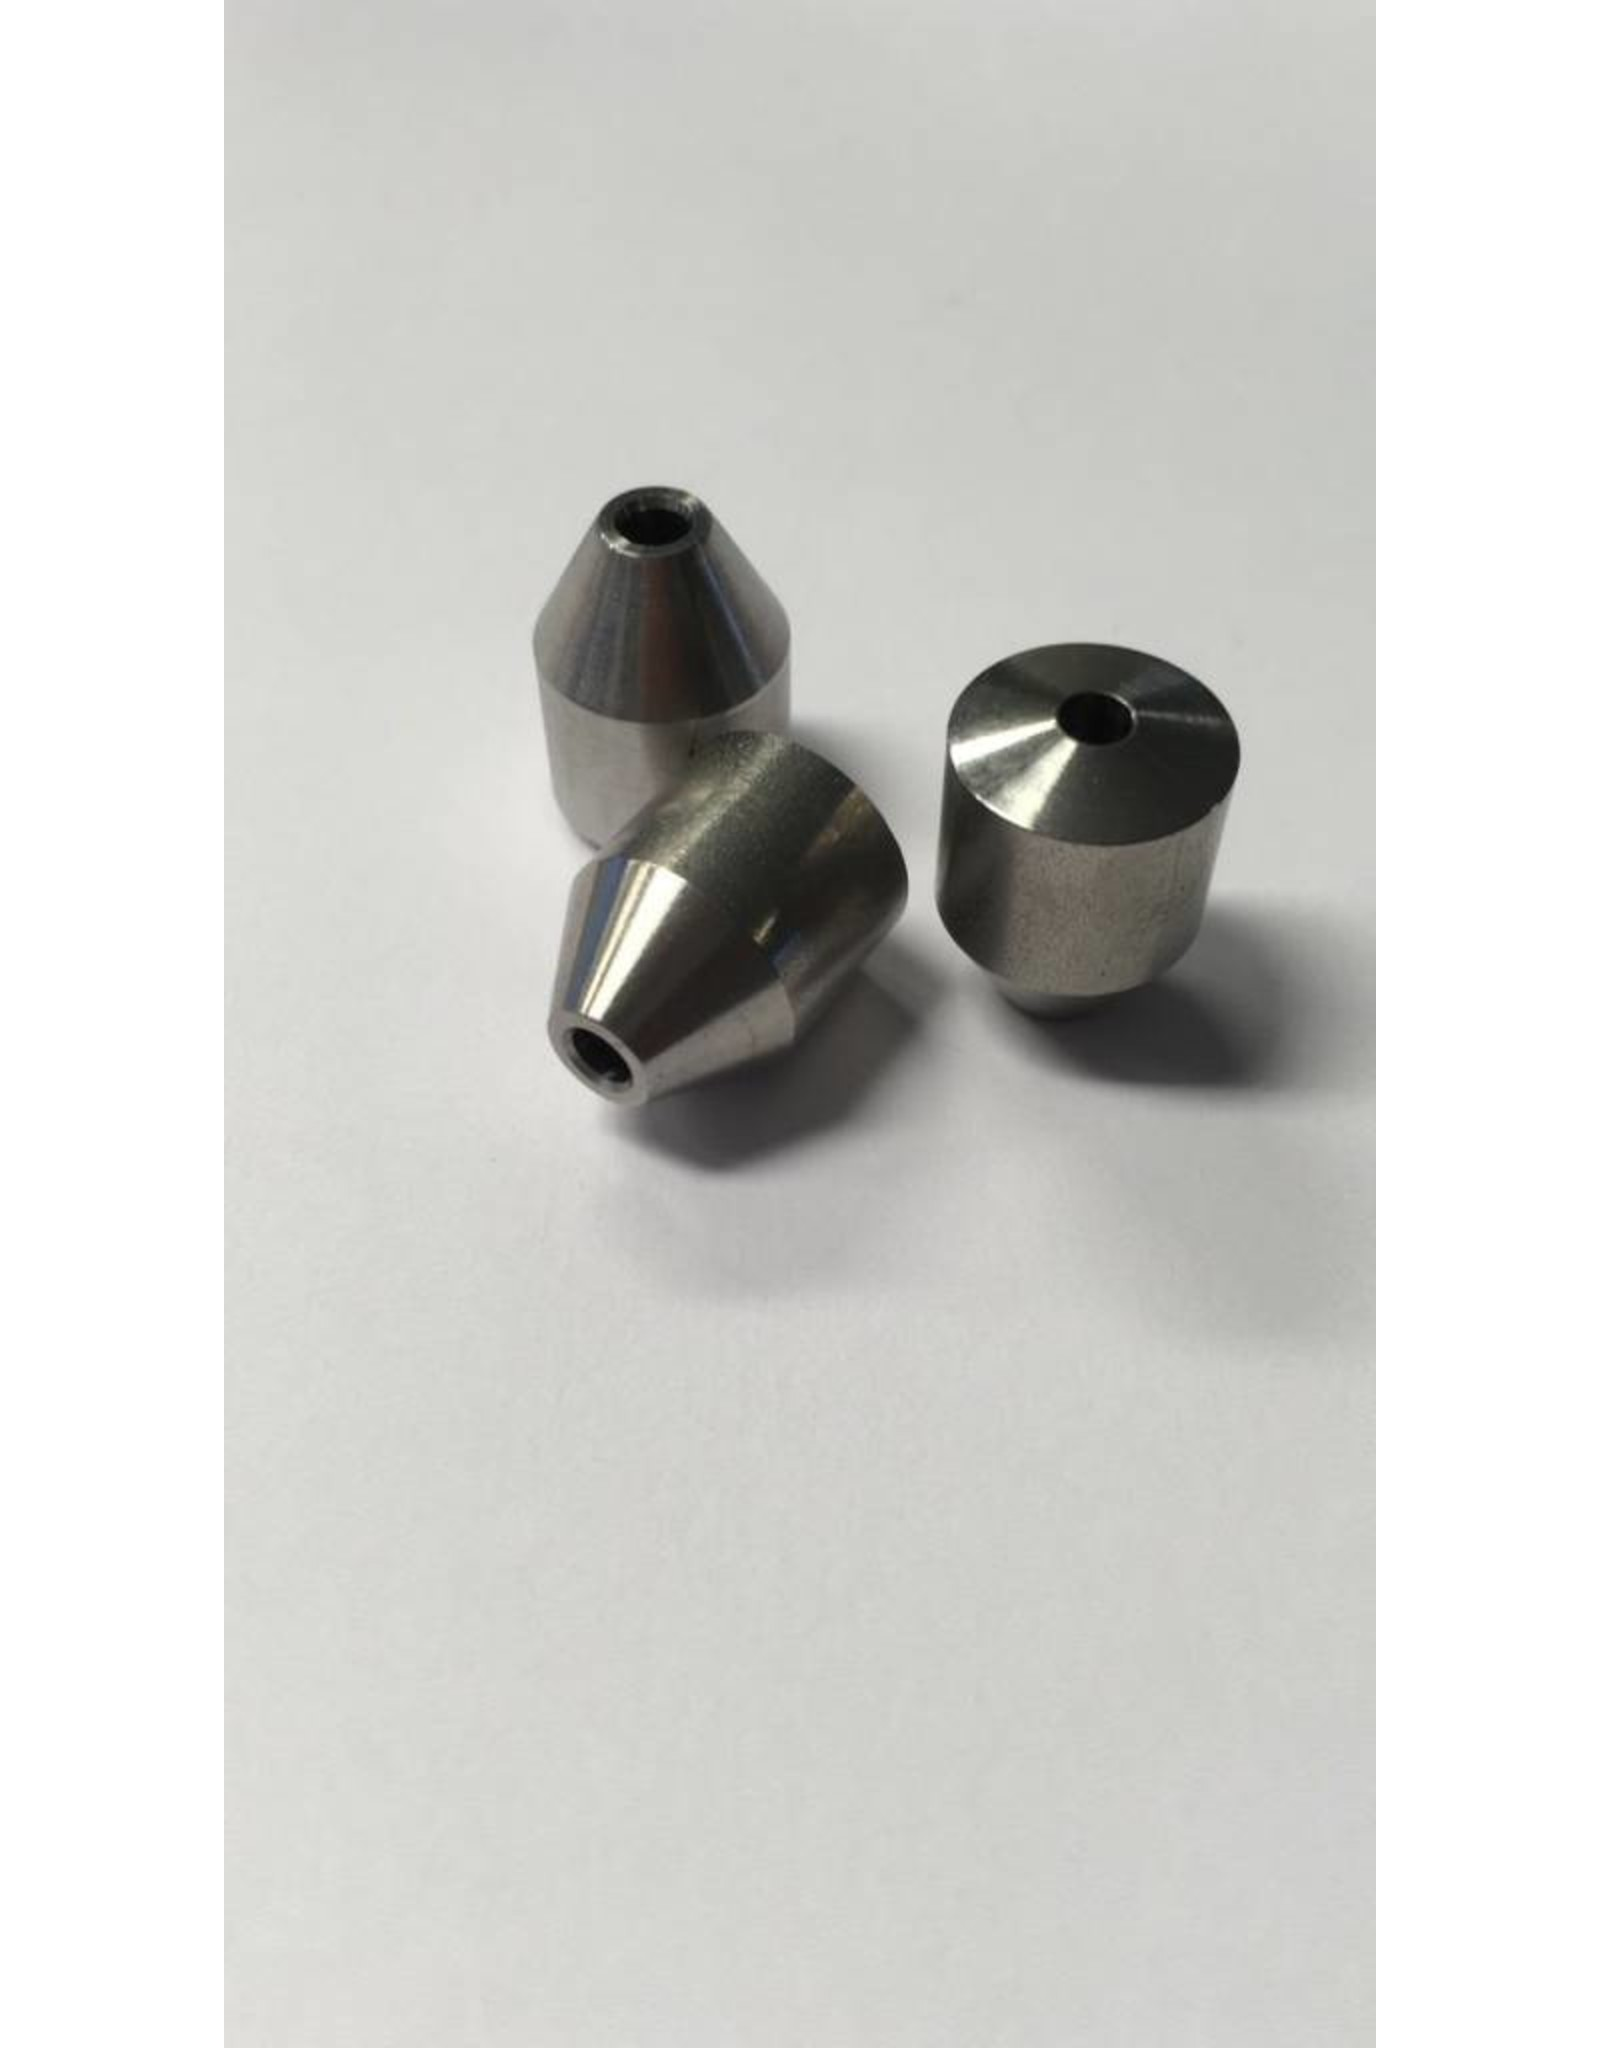 Flow Style Coned Insert for A-0792-1